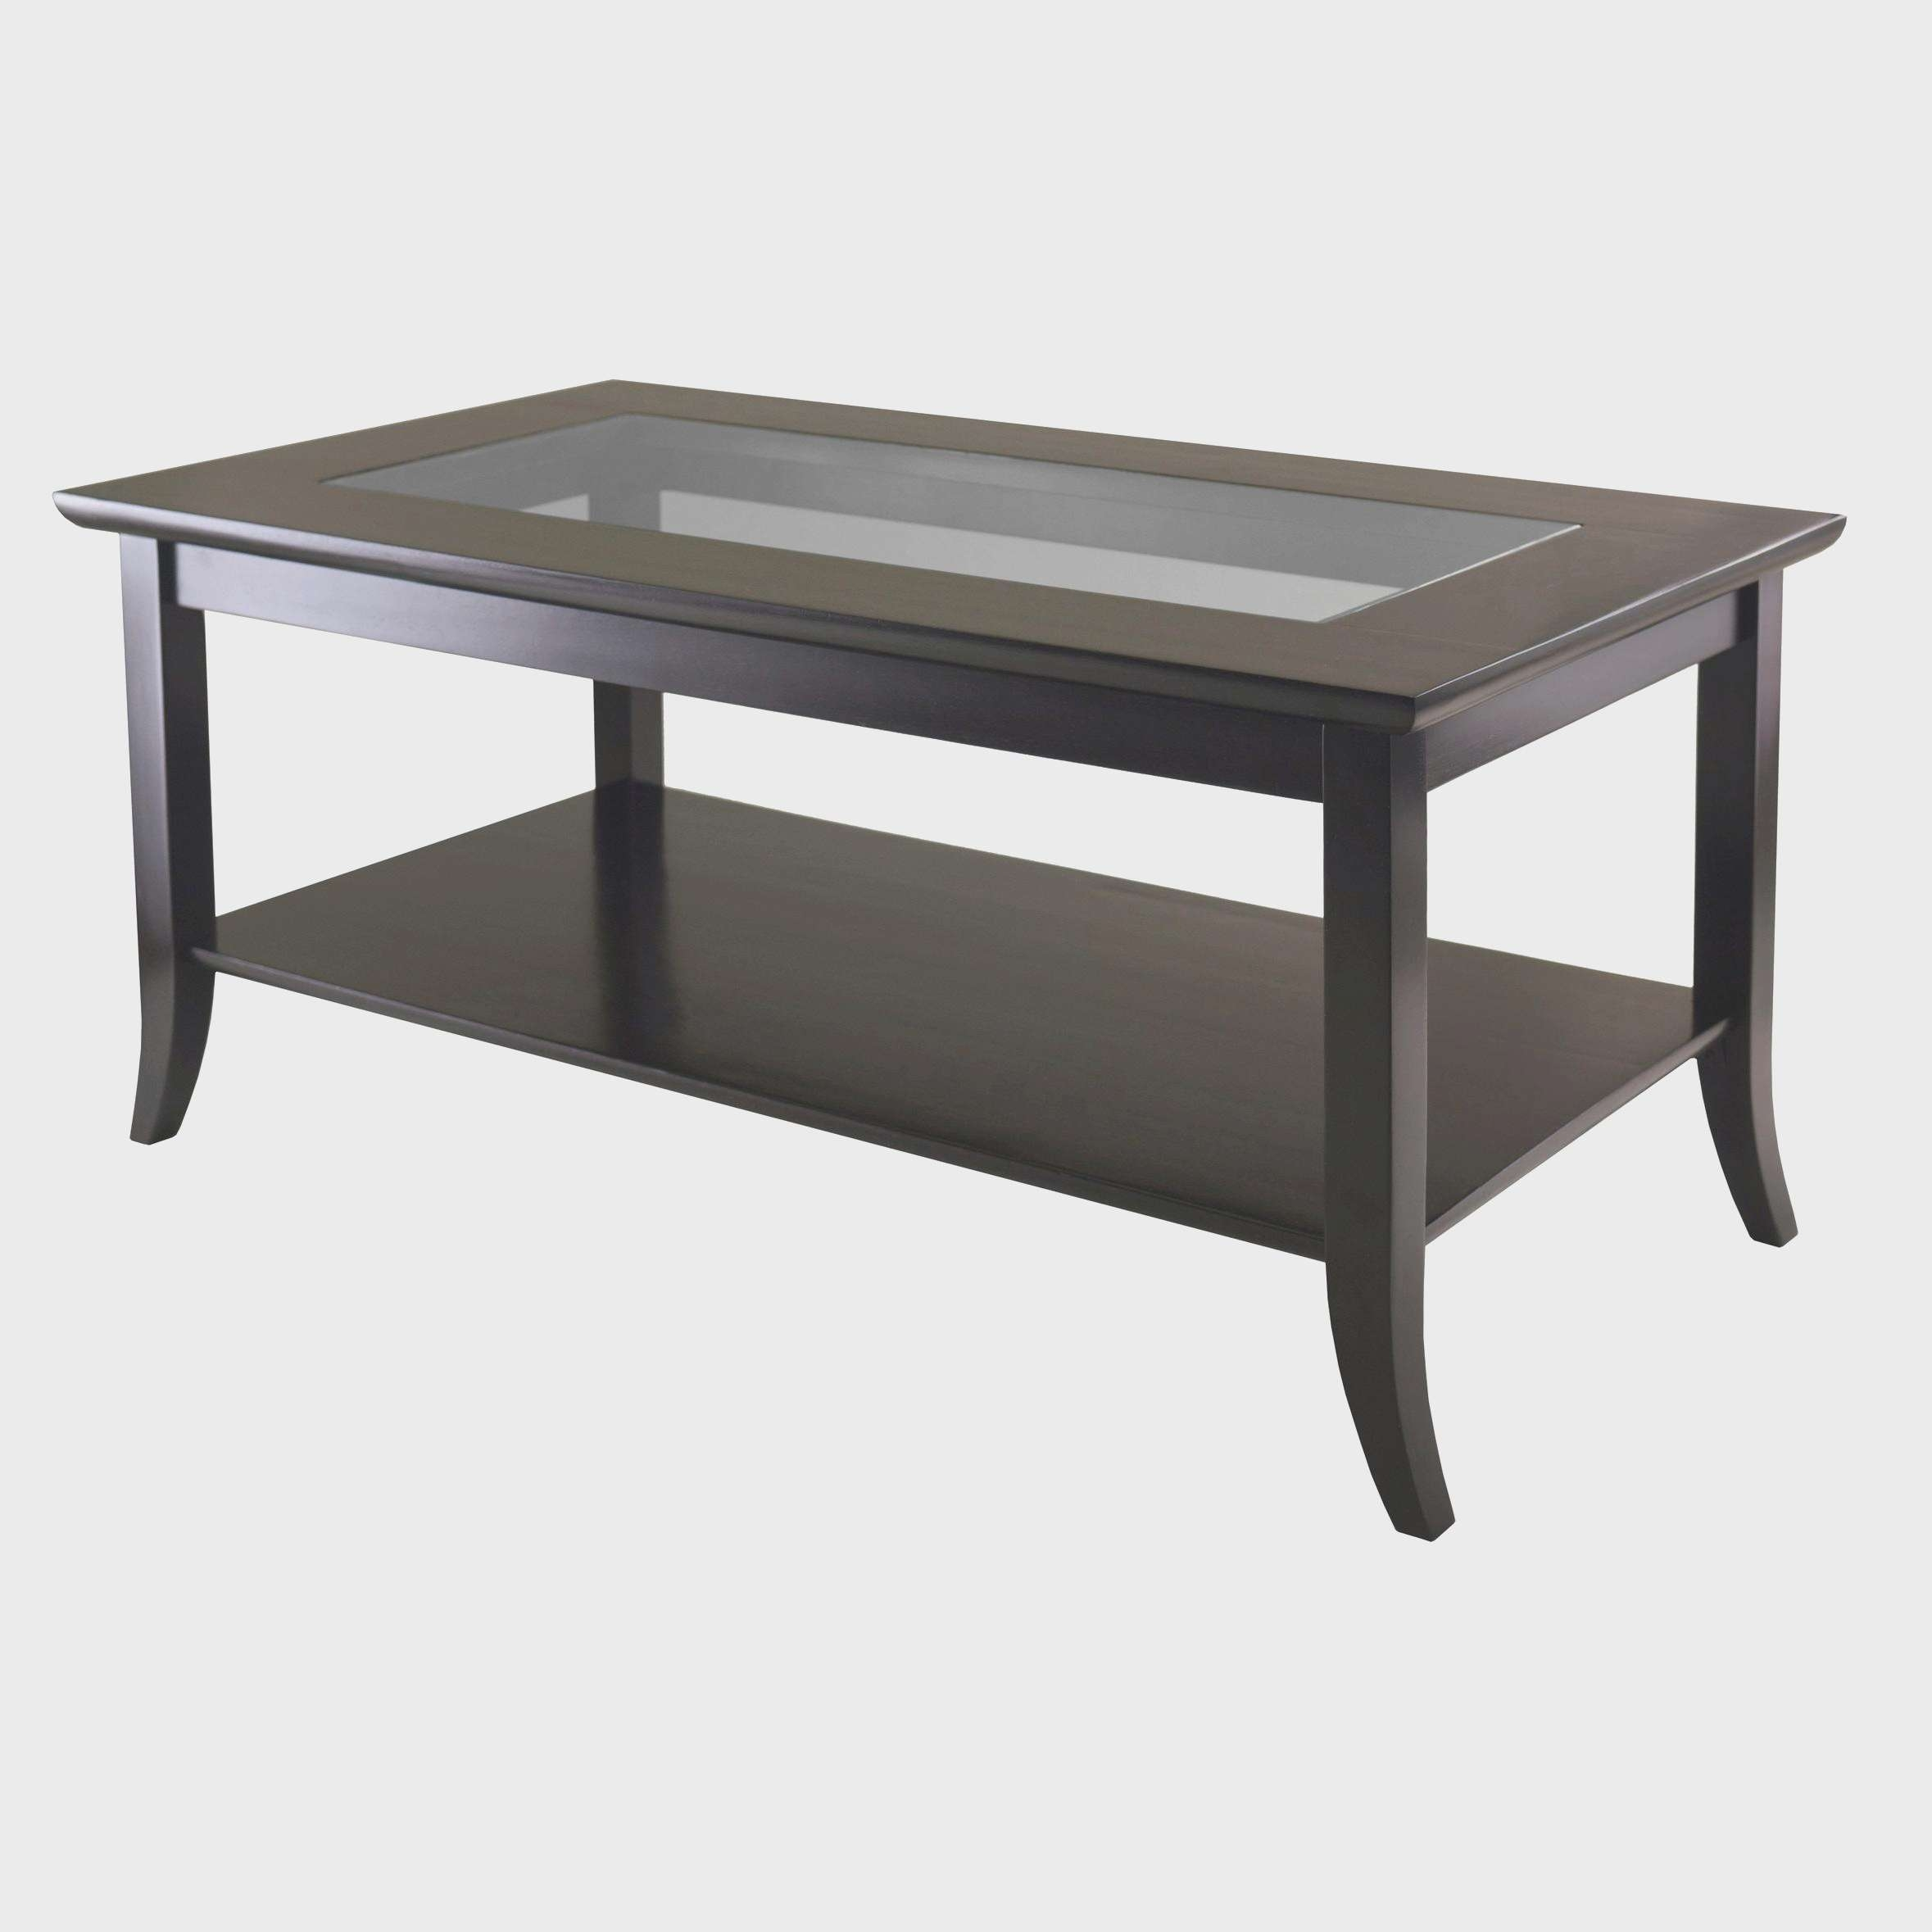 Newest Black Wood And Glass Coffee Tables With Regard To Coffee Tables : Table Ottoman Coffee Oval Walnut And Side Tables (View 10 of 20)